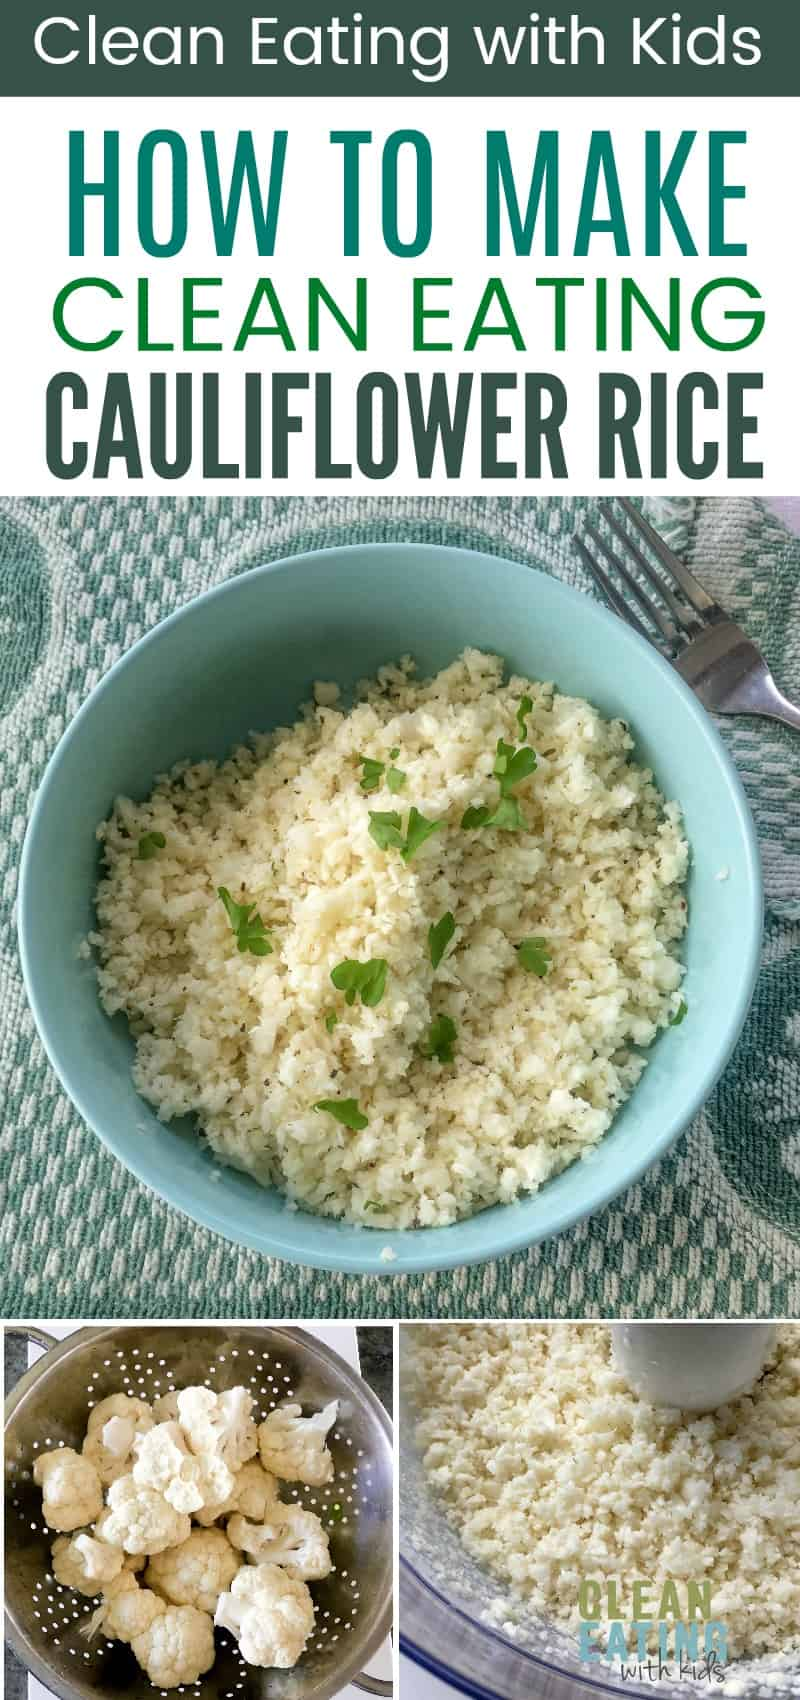 How to Make Clean Eating Cauliflower Rice. A Low carb rice substitute that's Paleo, Gluten Free and Keto. Only 25 Calories in an entire Cup.